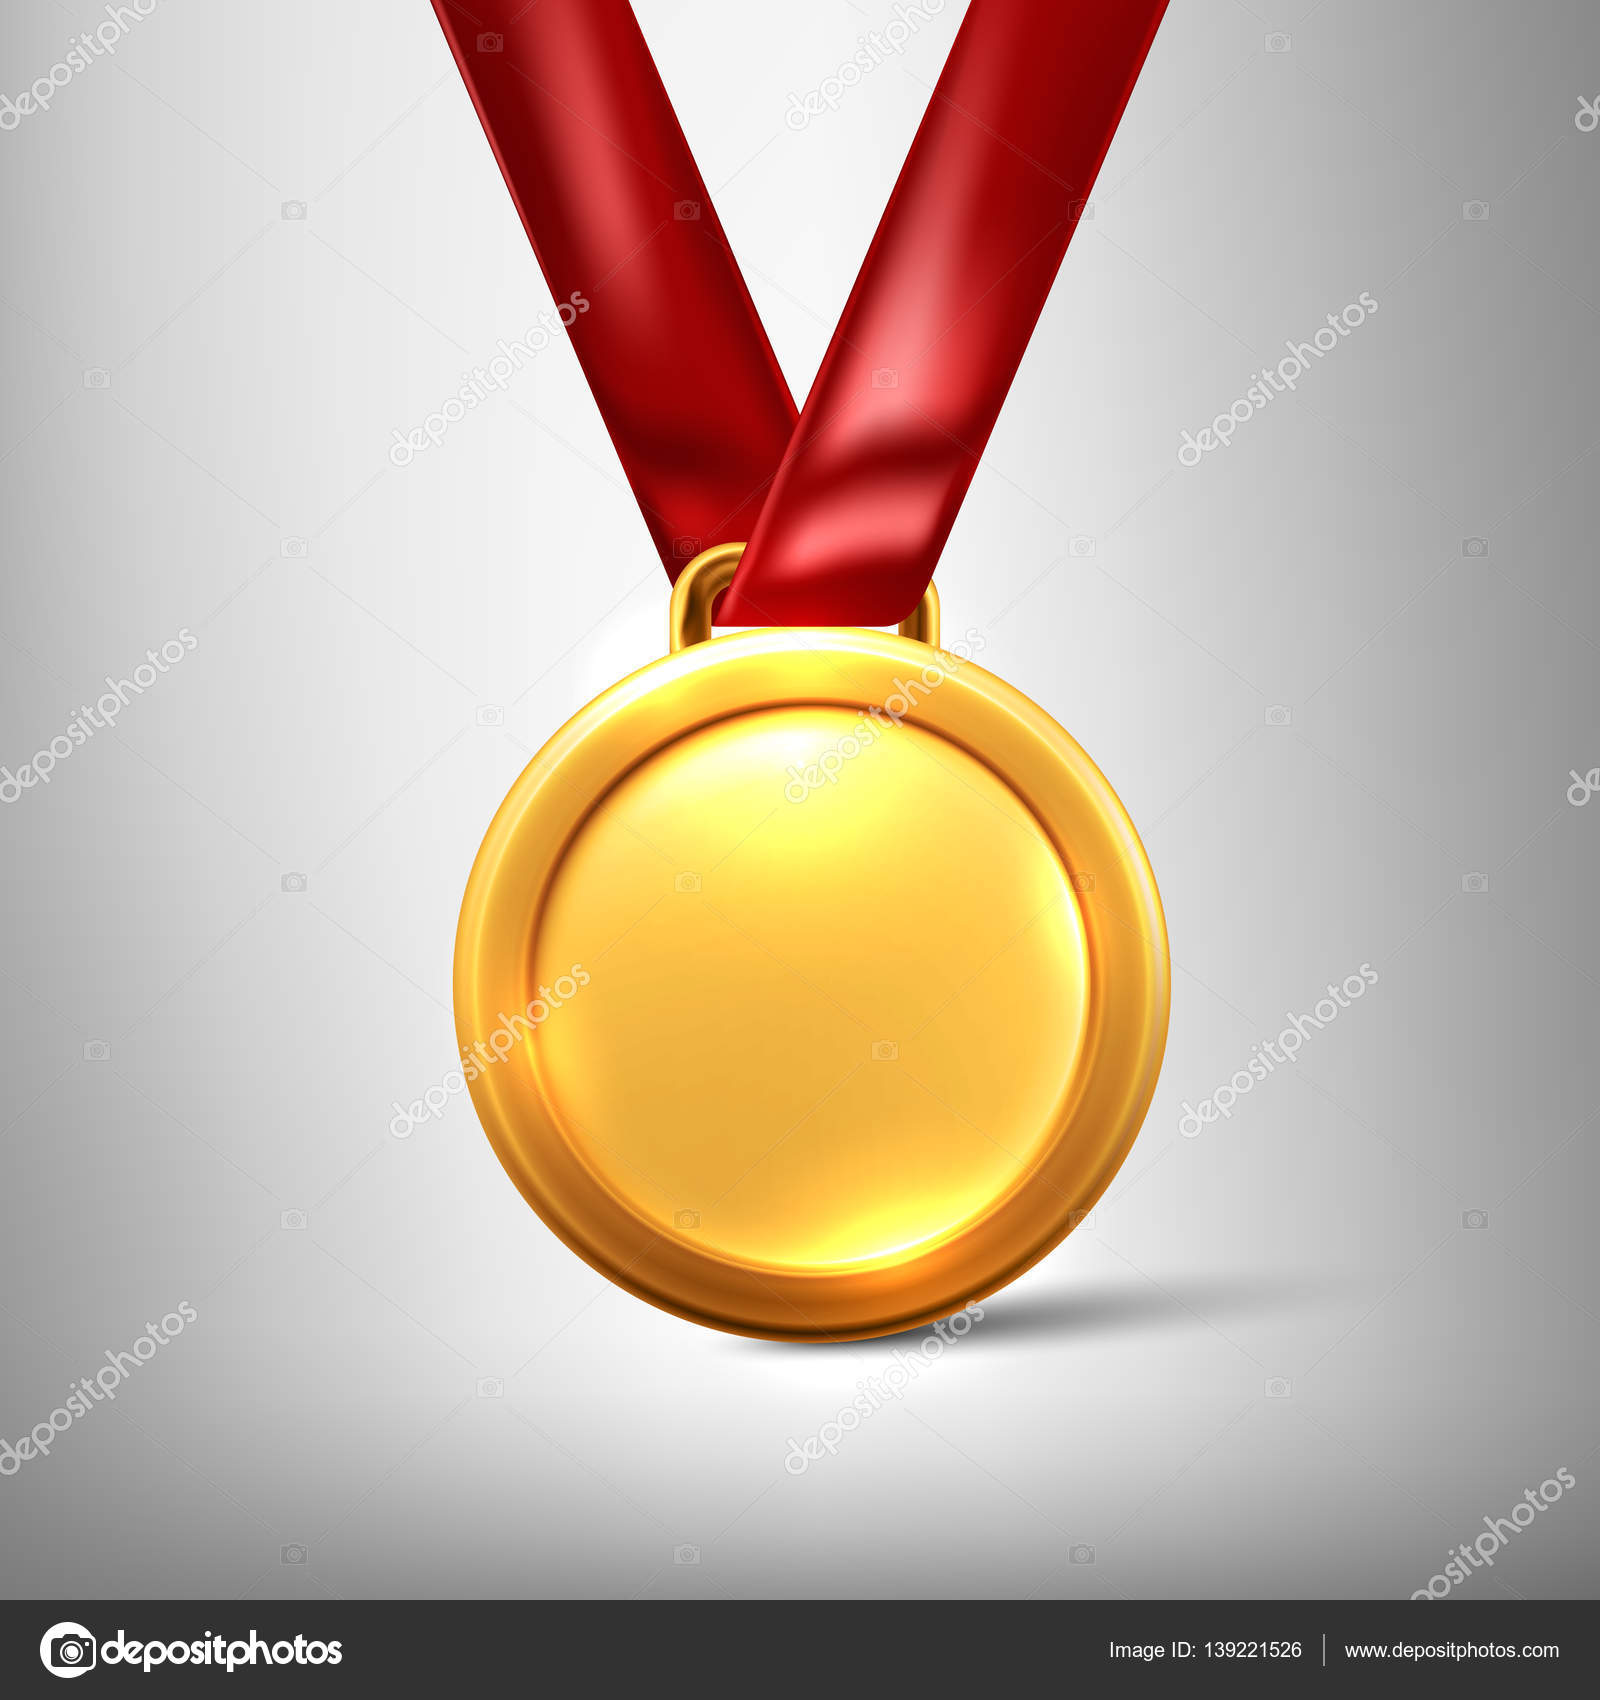 Gold medal isolated on a grey background Vector illustration